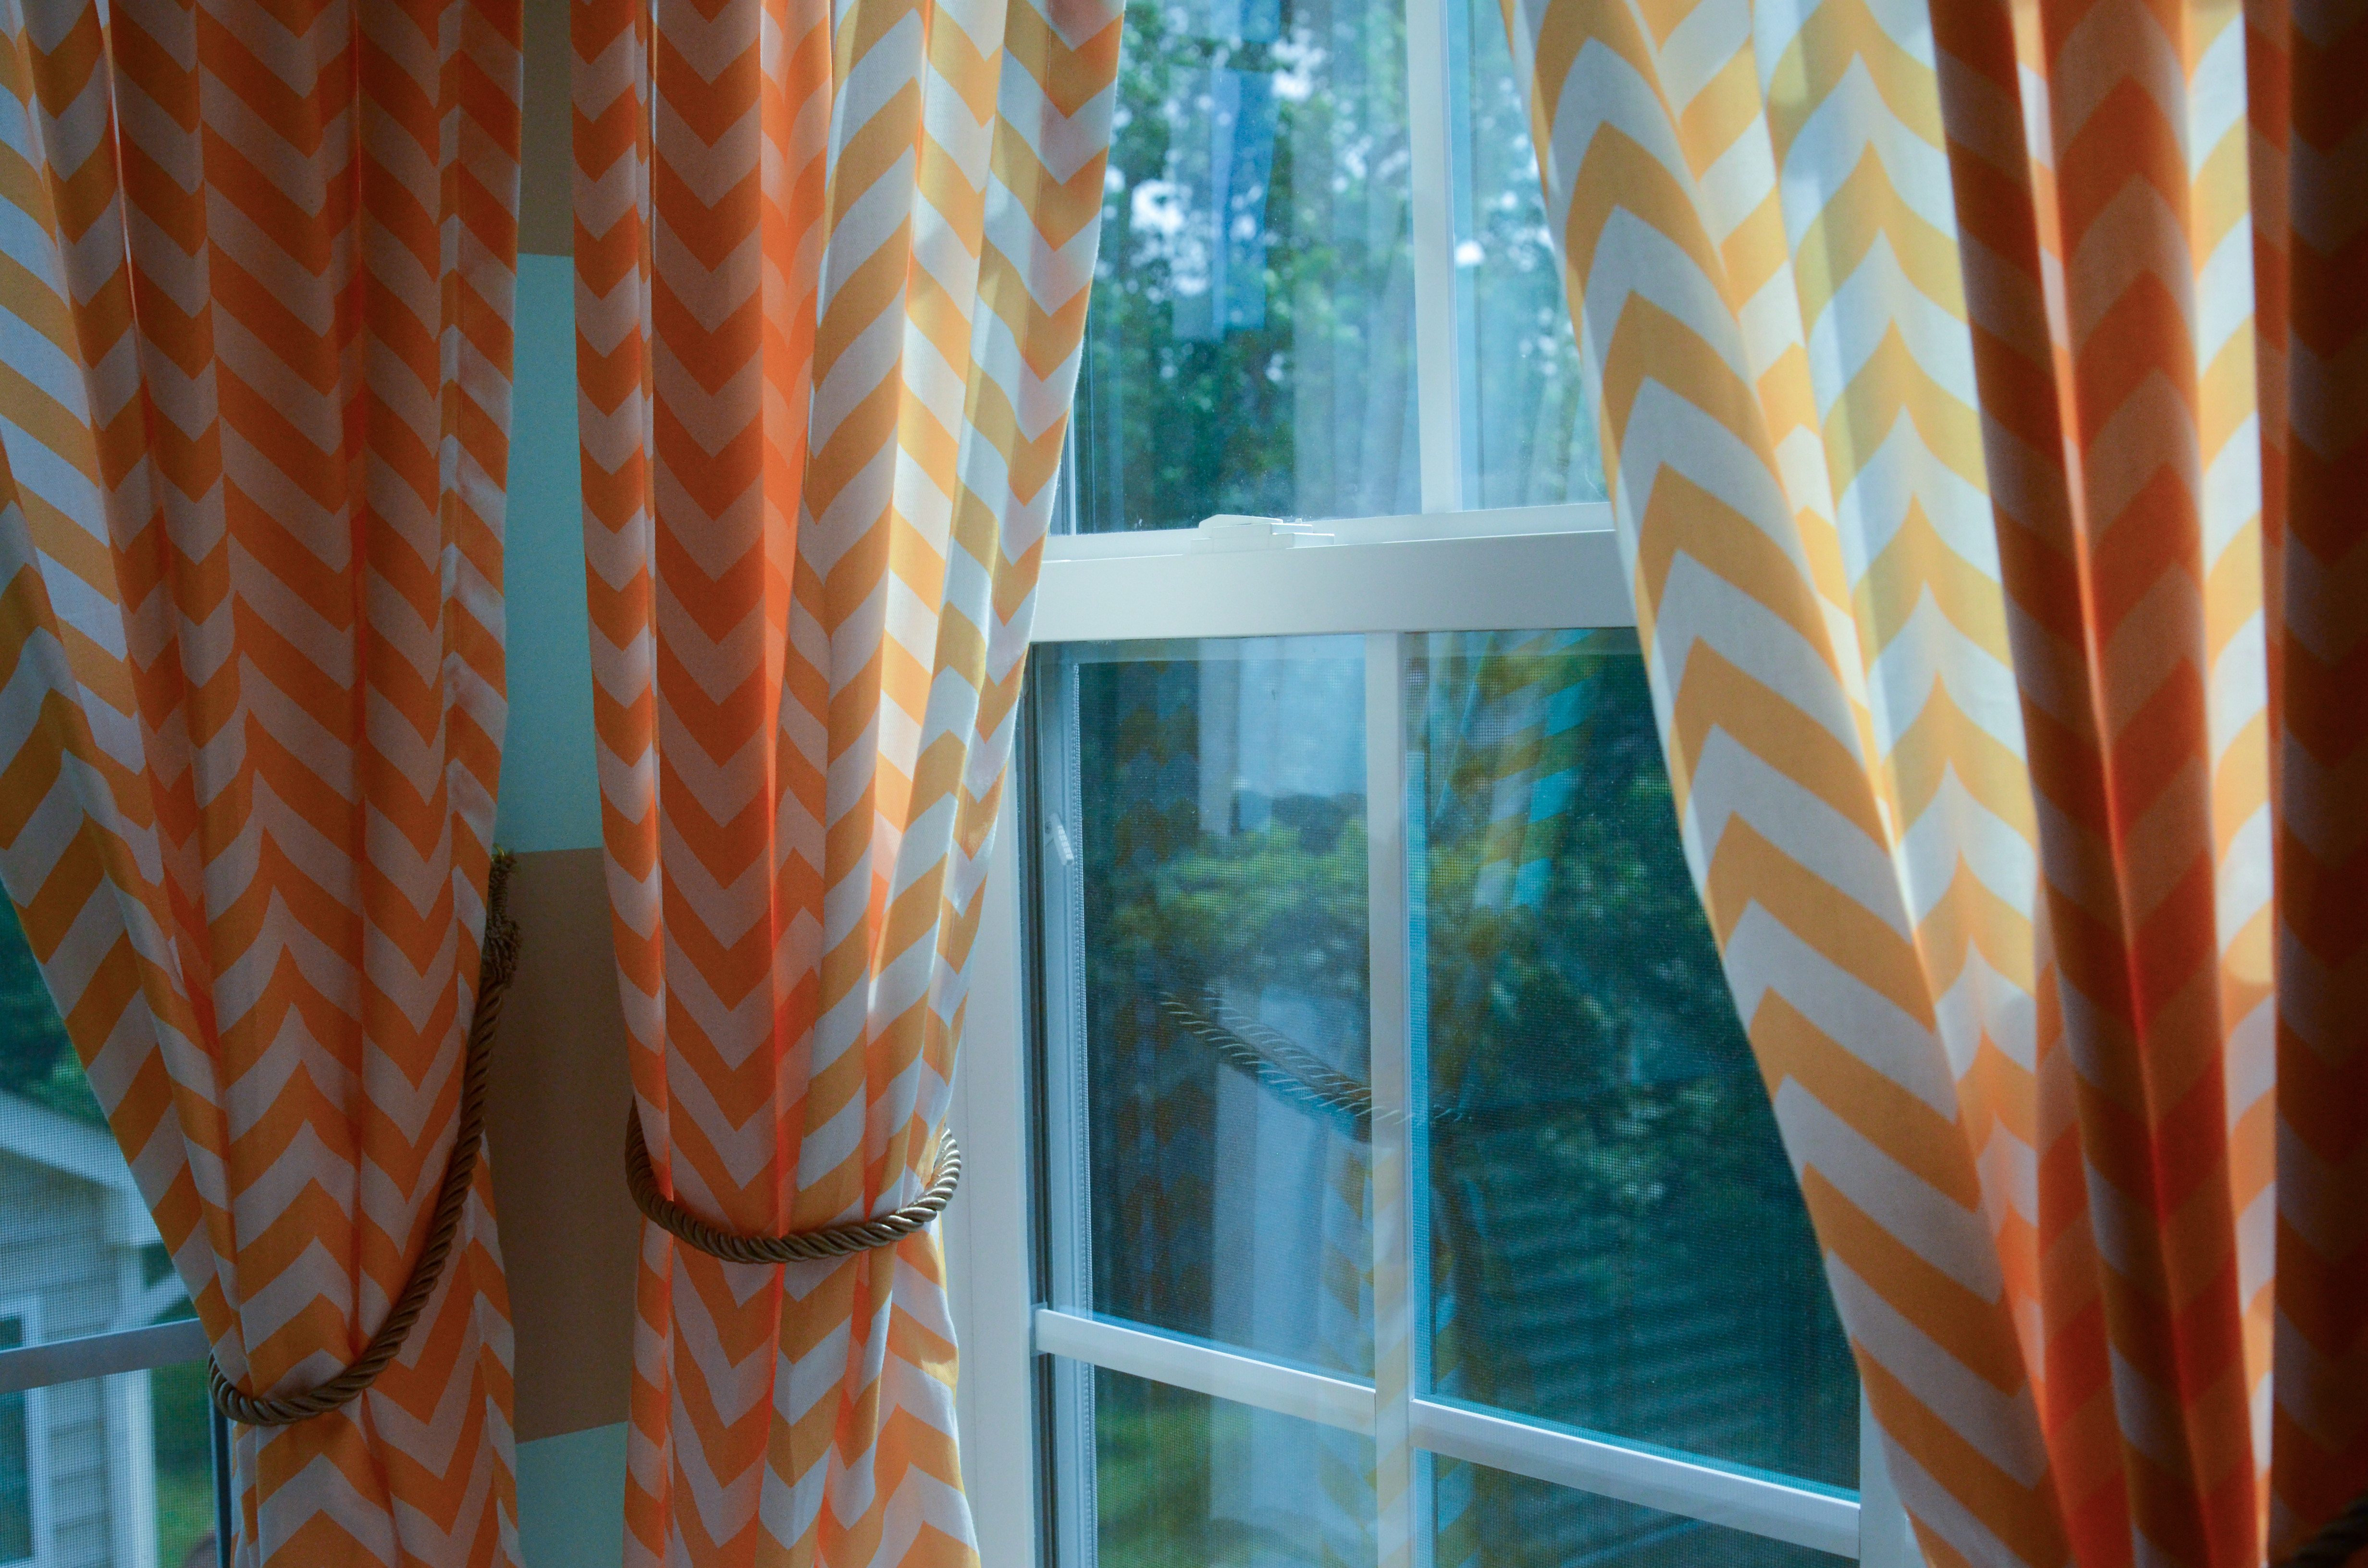 orange and white Chevron Curtains on window and horizontal striped white and orange wall